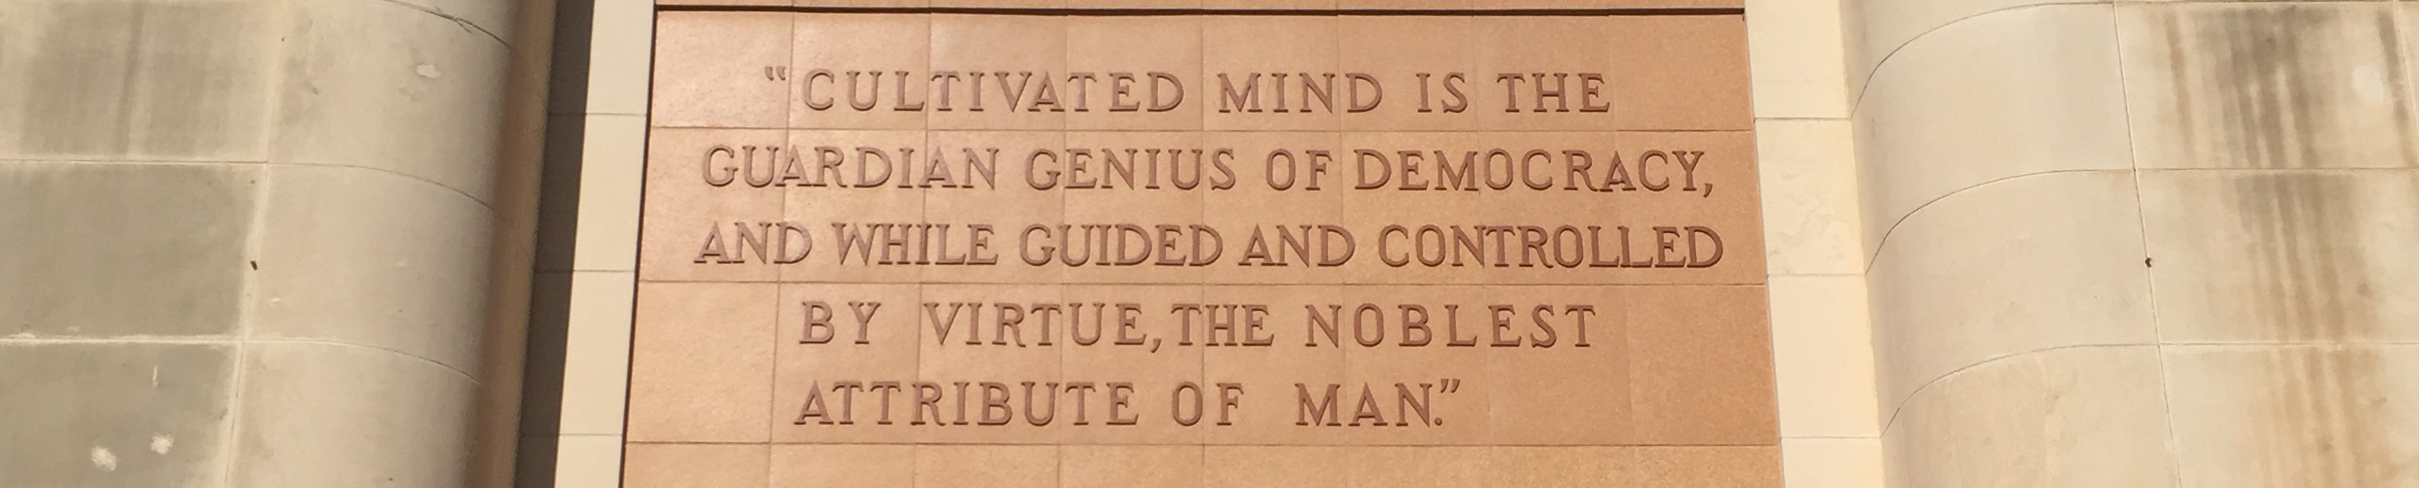 """Cultivated Mind is the guardian genius of Democracy and while guided and controlled by virtue the noblest attribute of man"", Engraved above entrance to the Library at West Texas A&M University, Amarillo, TX. Photo by the author. All rights reserved College Deliberately, LLC."